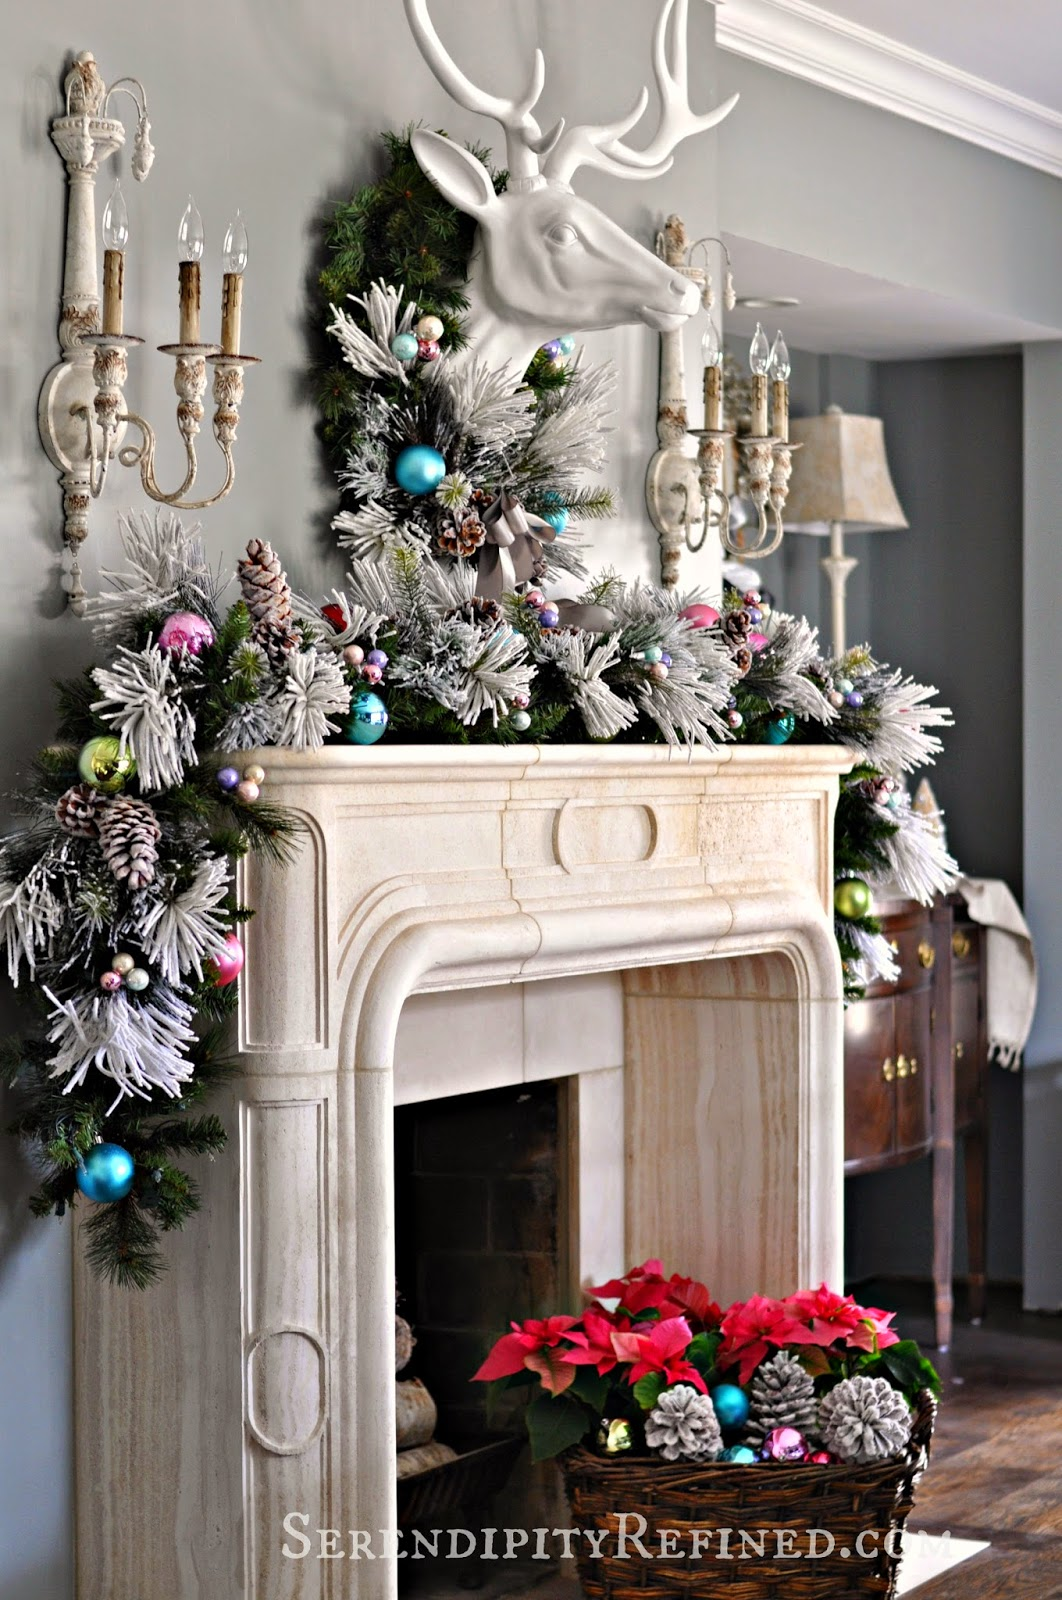 Serendipity refined blog frosty pastel dining room for Images of fireplace mantels decorated for christmas